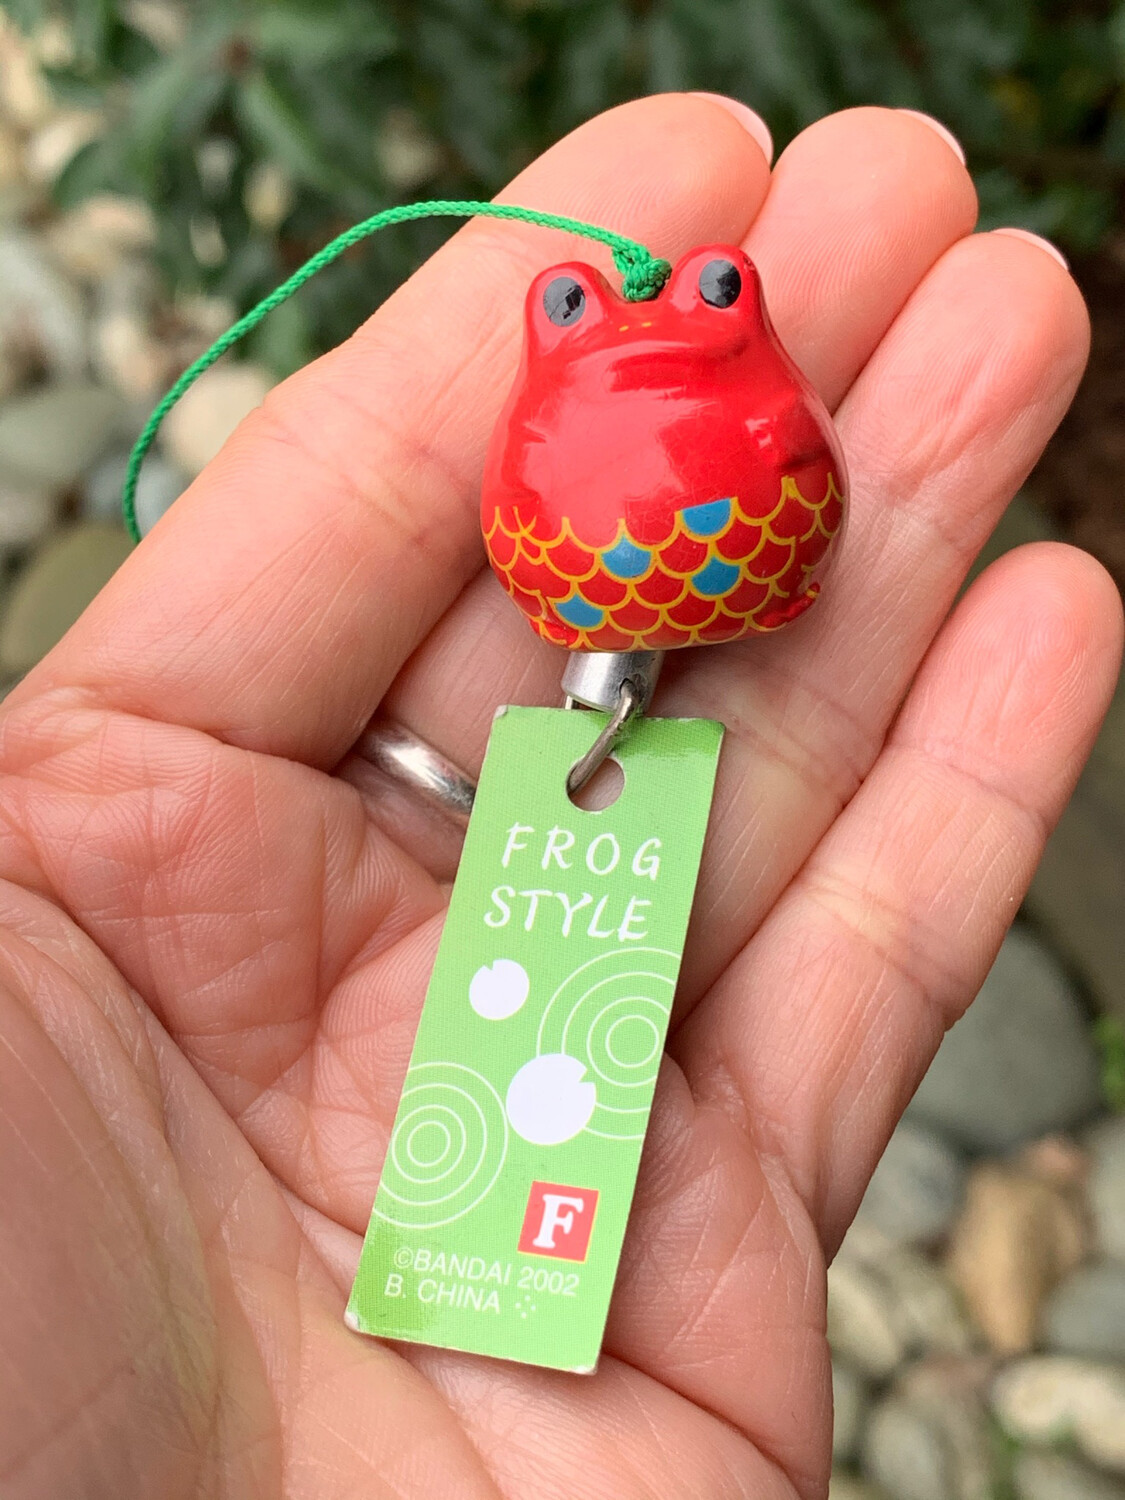 Gold Fish Frog Style Mini Wind Chime Strap